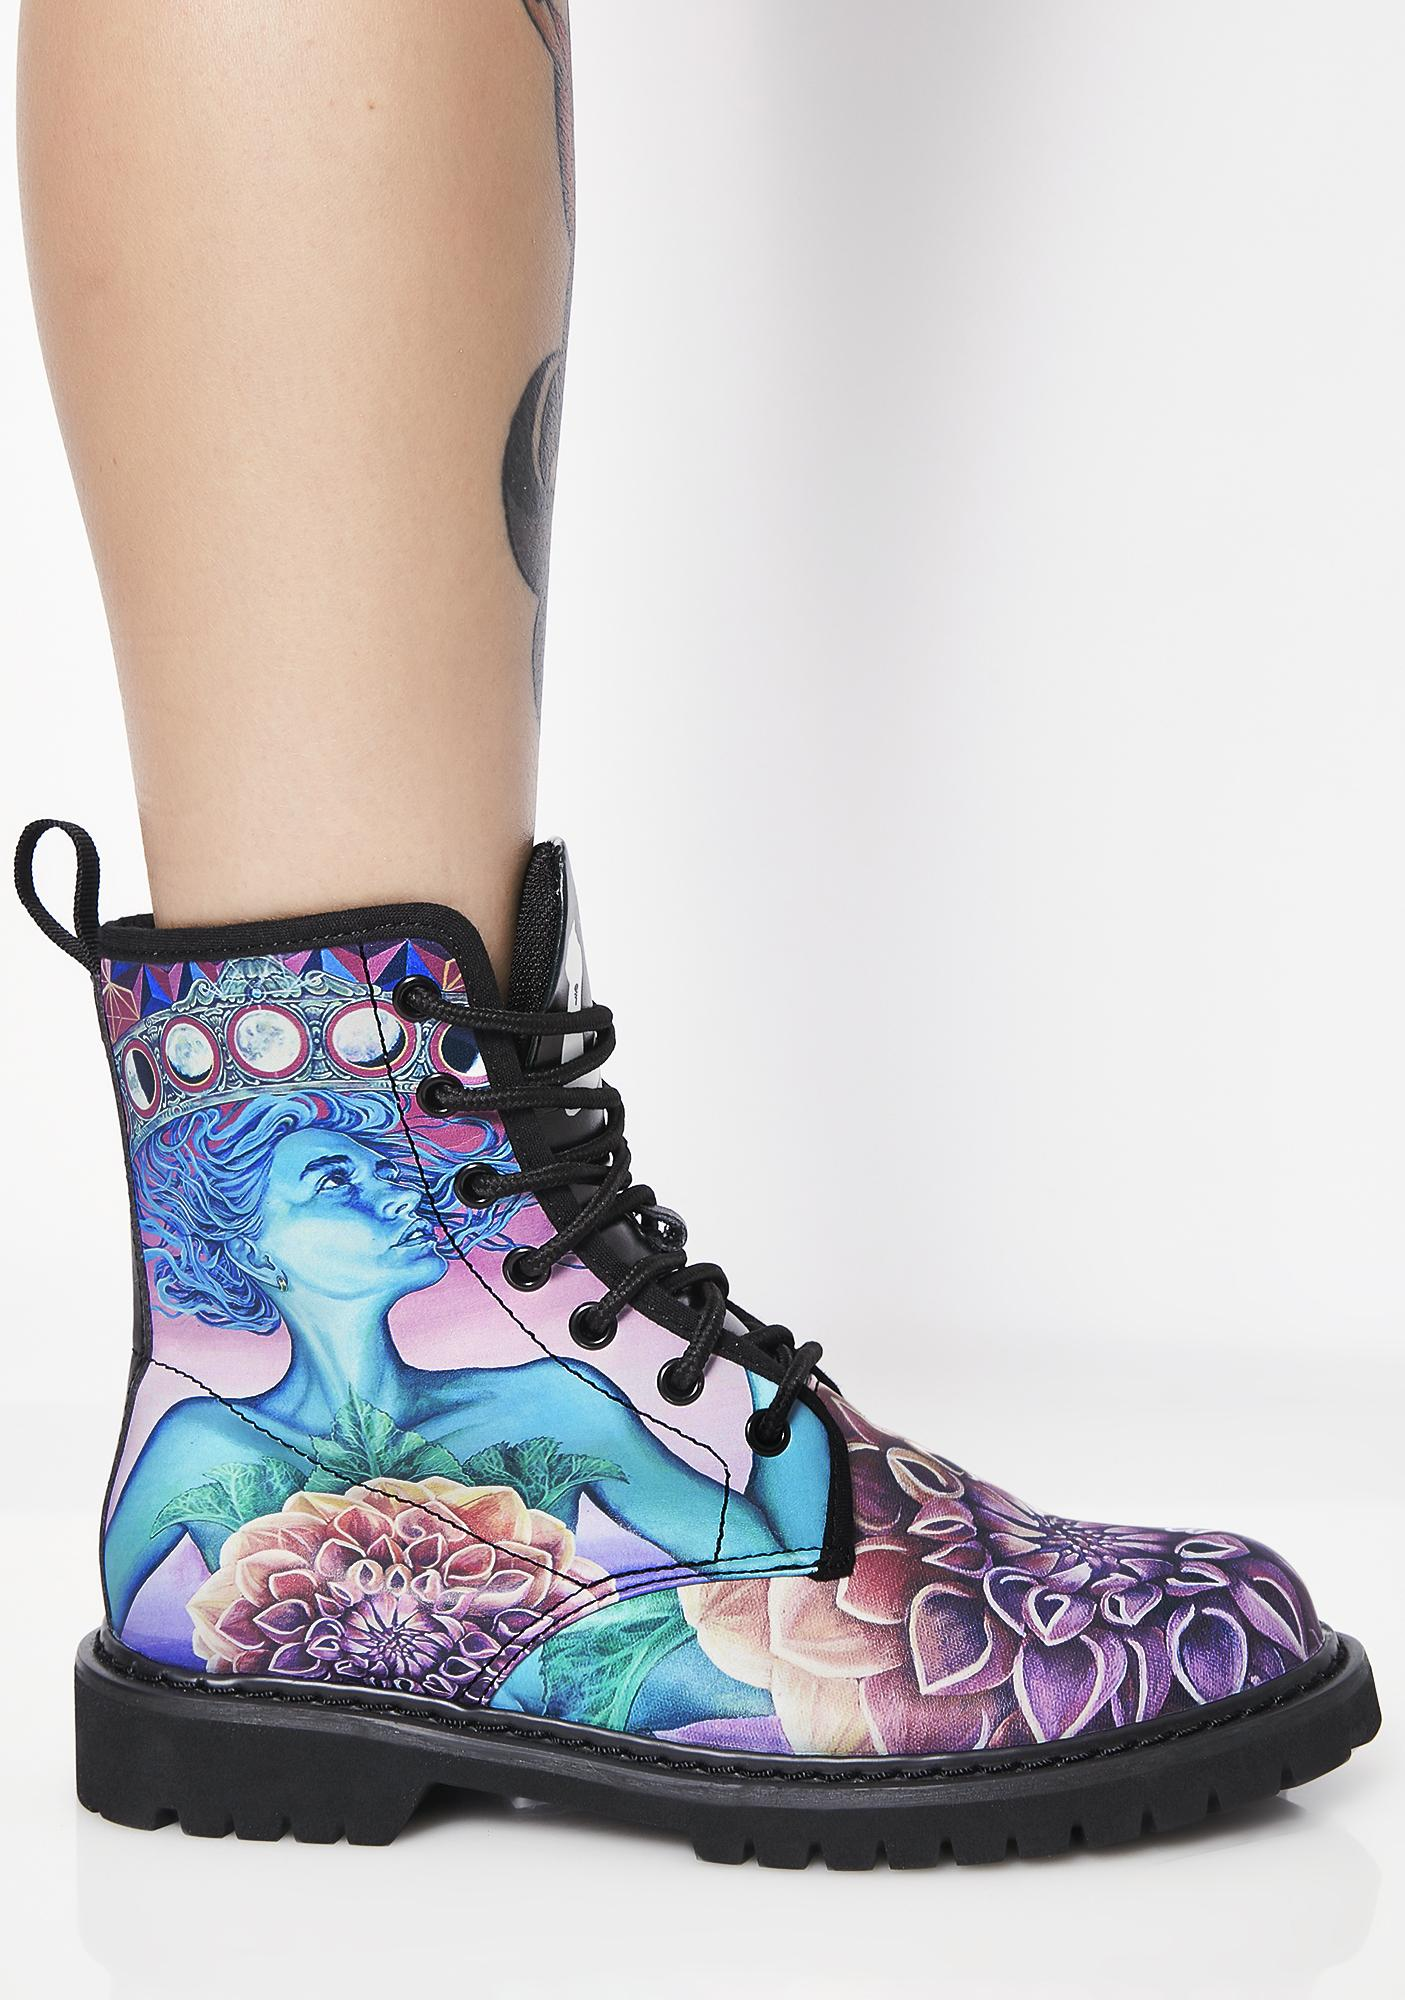 Noa Knafo The Gate Of Knowledge Vegan Boots